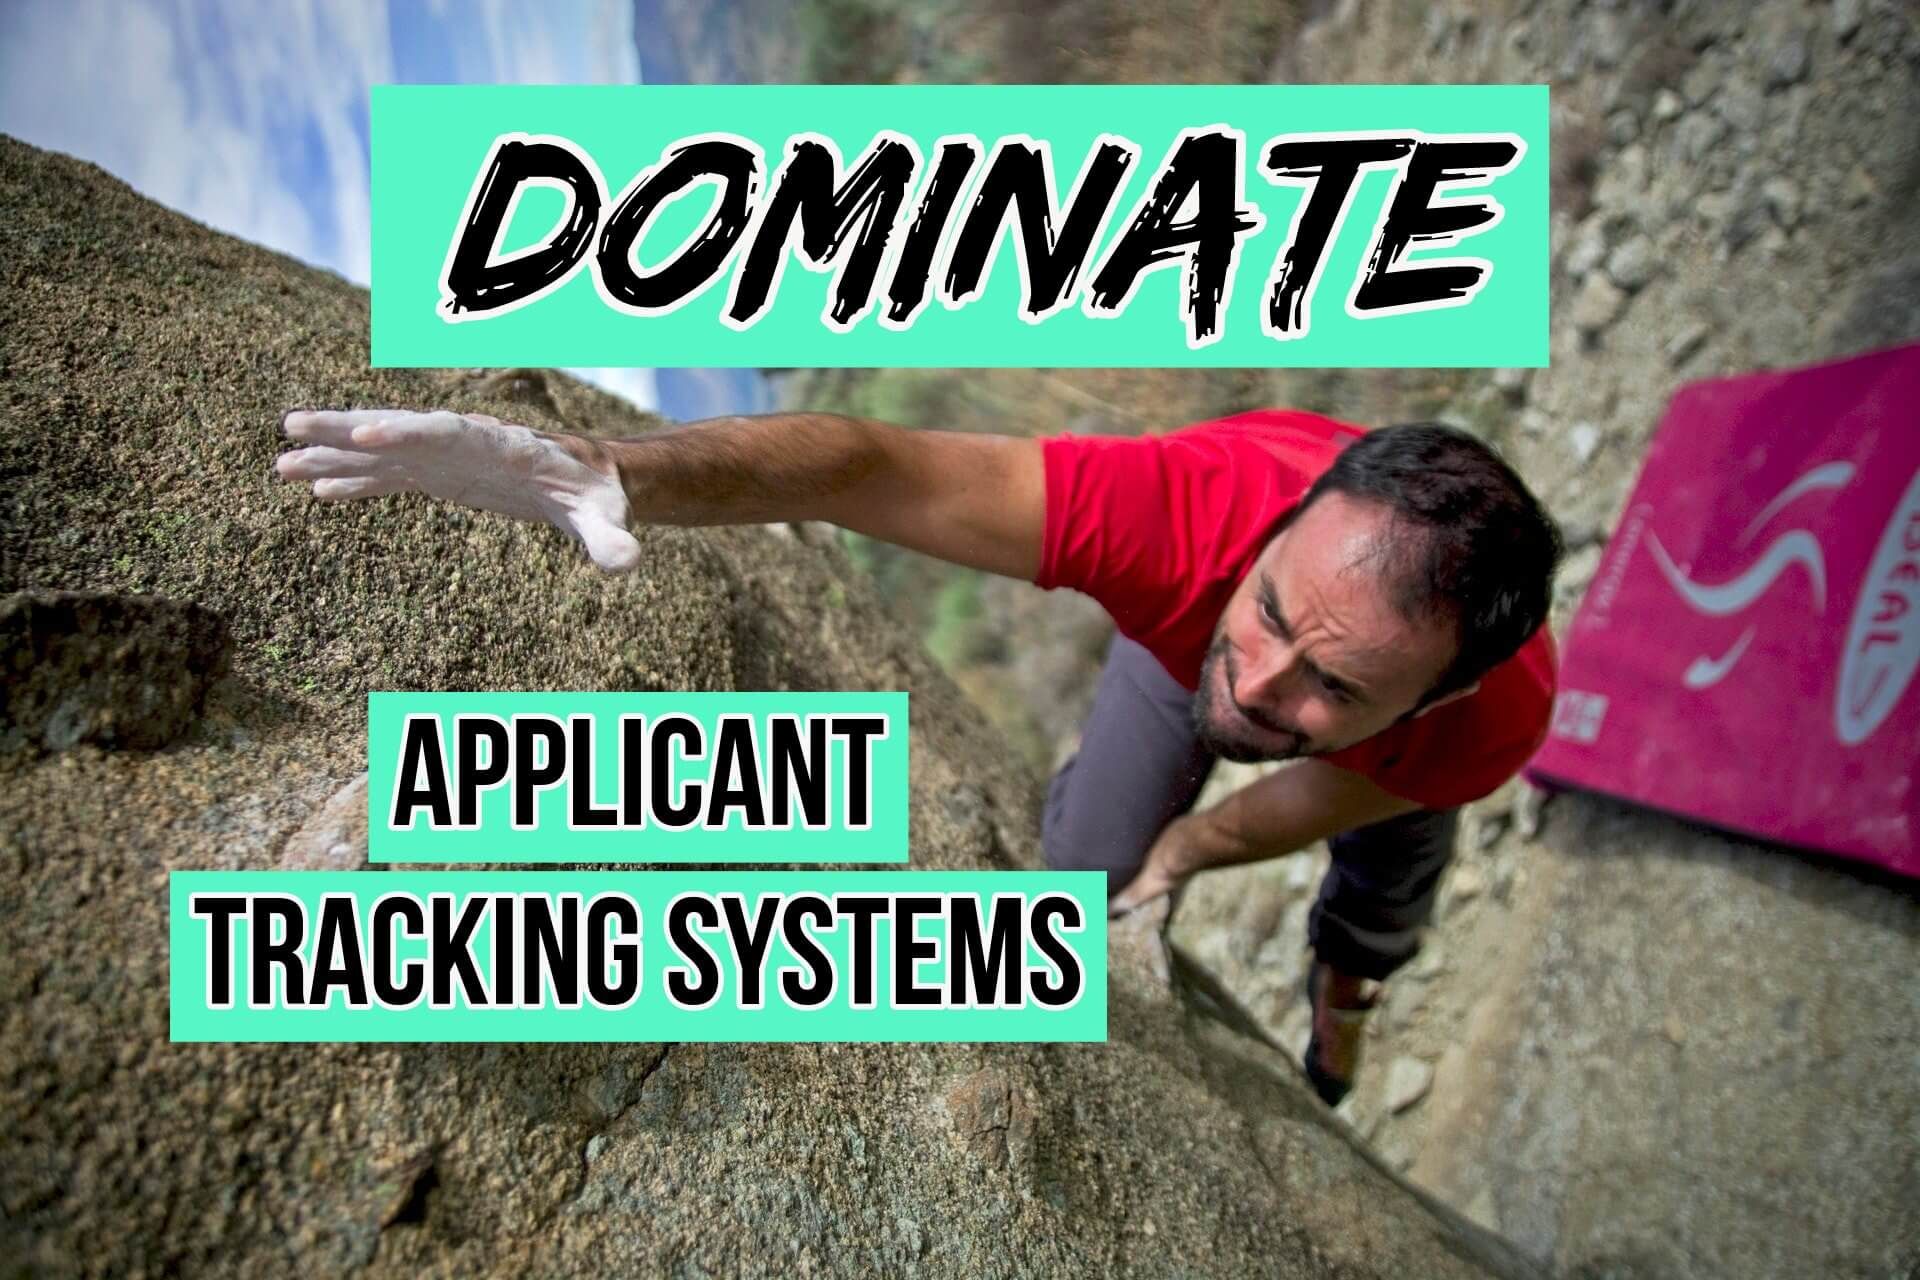 Dominate Applicant Tracking Systems